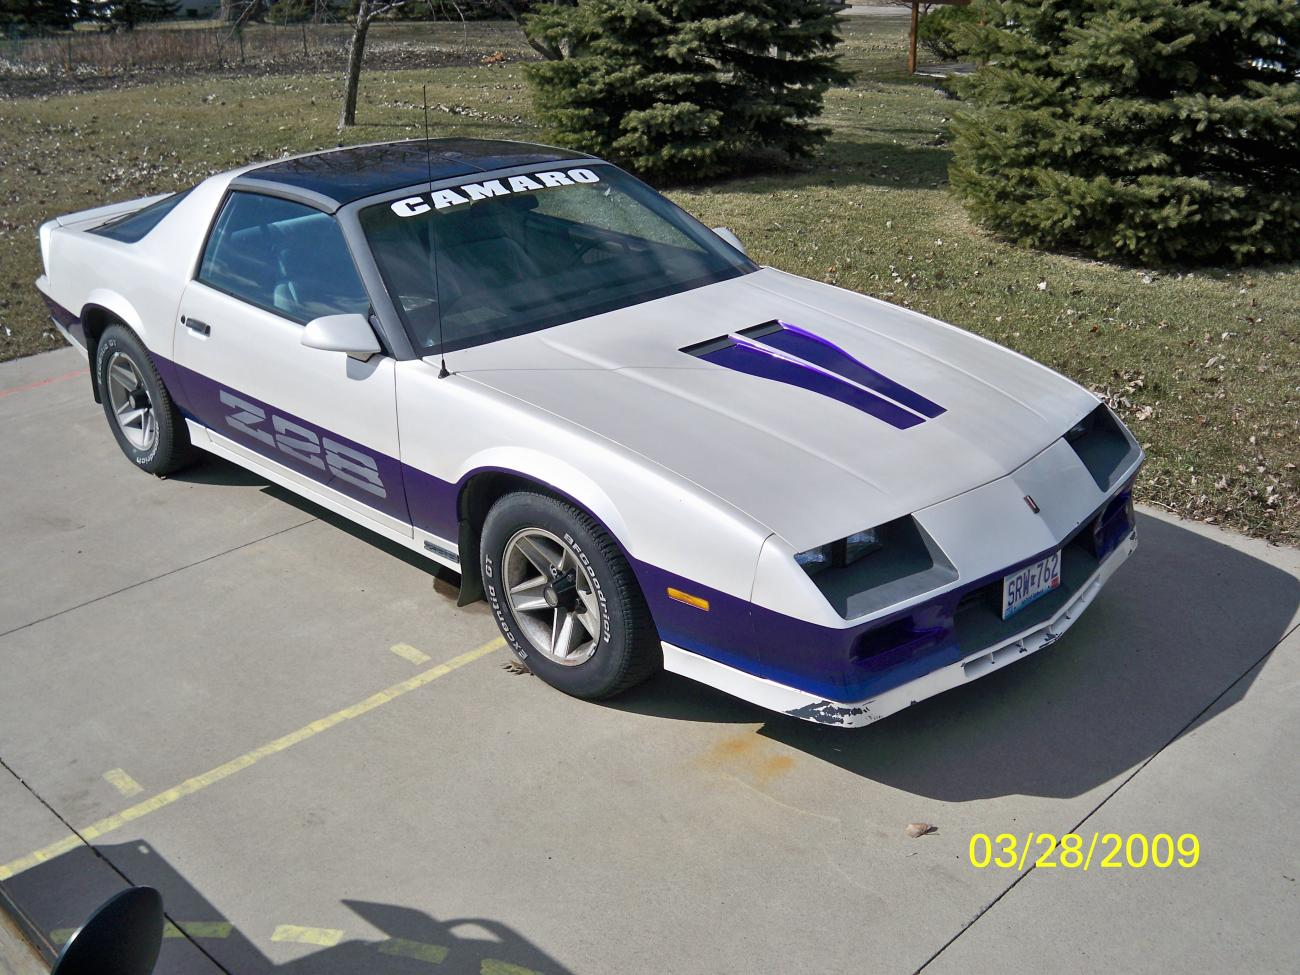 1982 pace car for sale camaro5 chevy camaro forum. Black Bedroom Furniture Sets. Home Design Ideas